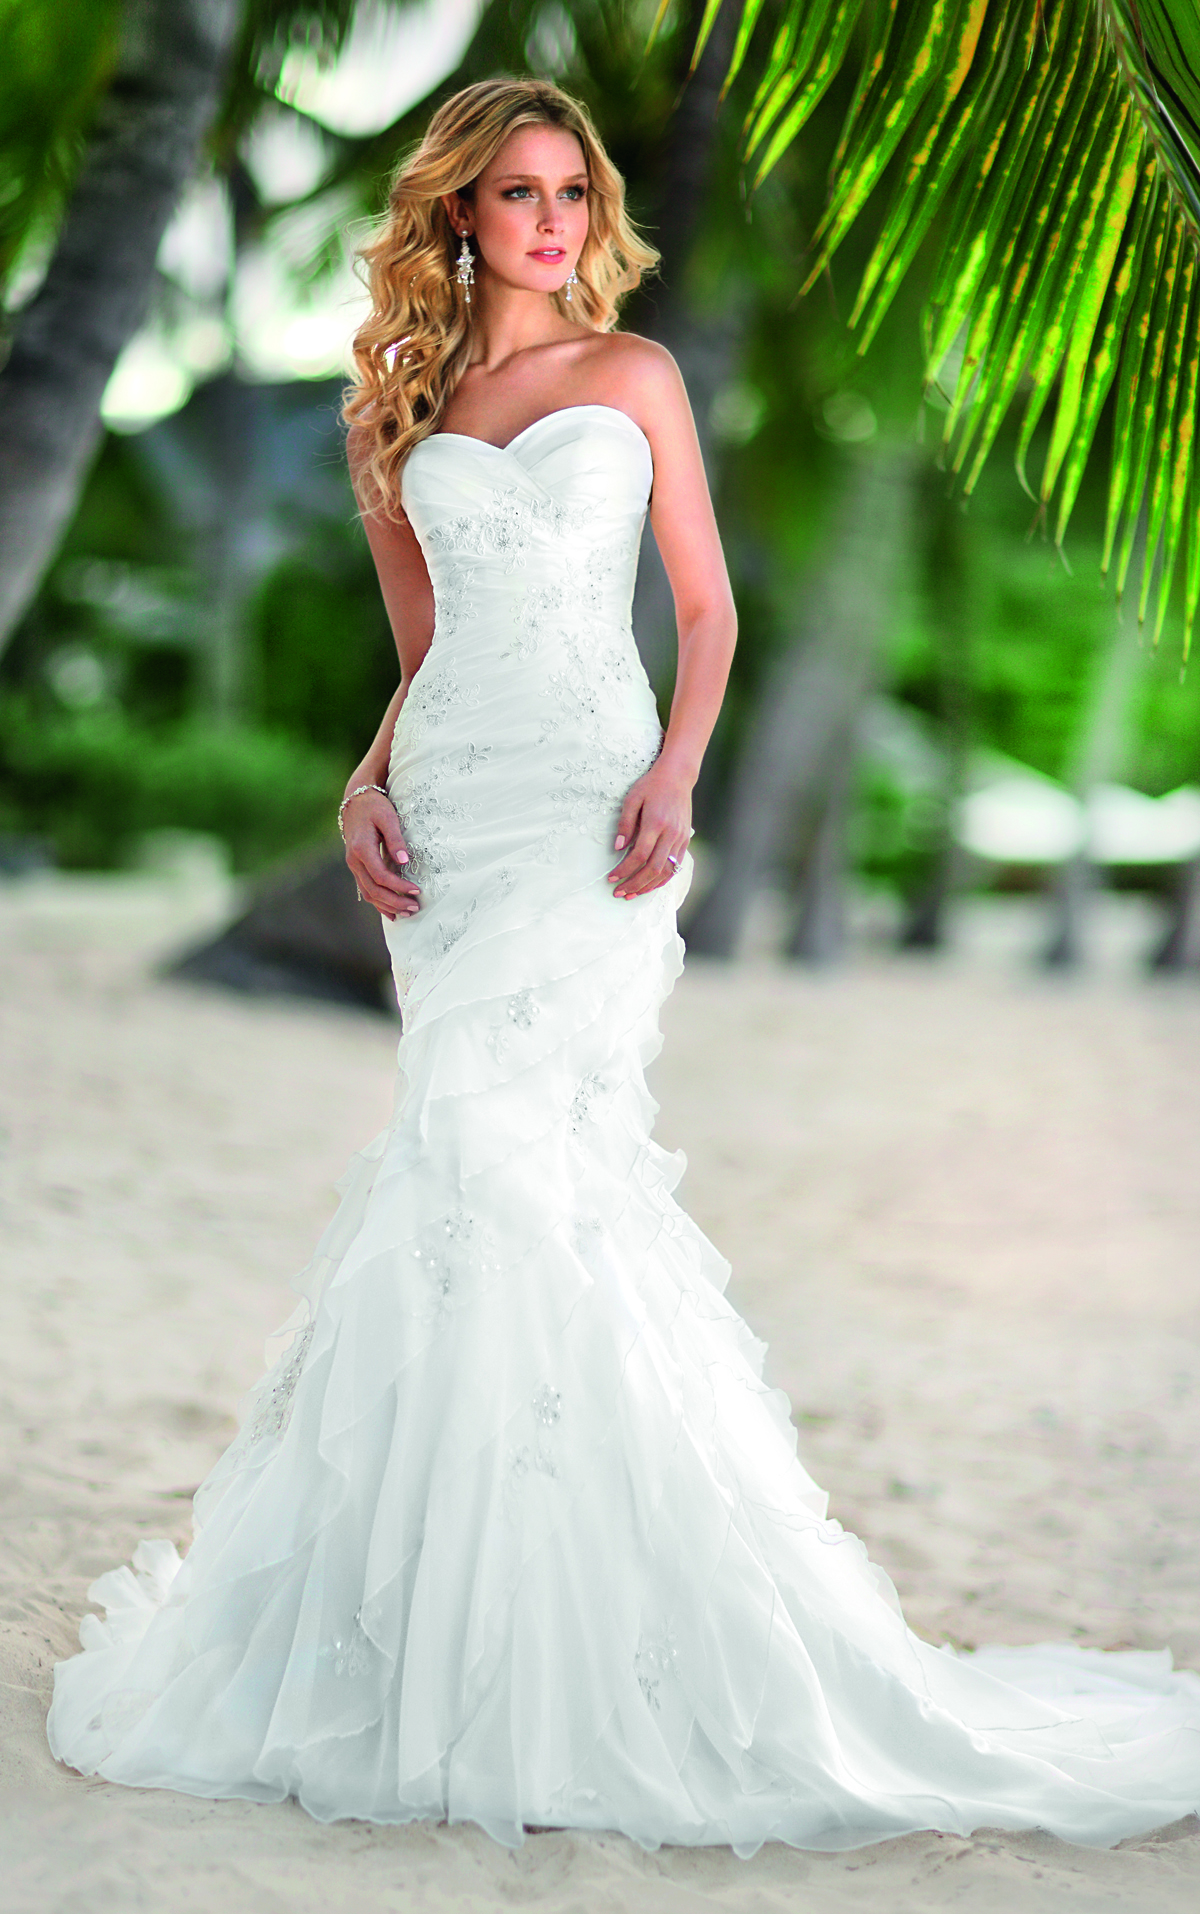 Top 10 2013 wedding dress style mermaid wedding inspiration trends mermaid wedding dress ella bridals top 10 2013 wedding dress style ombrellifo Image collections